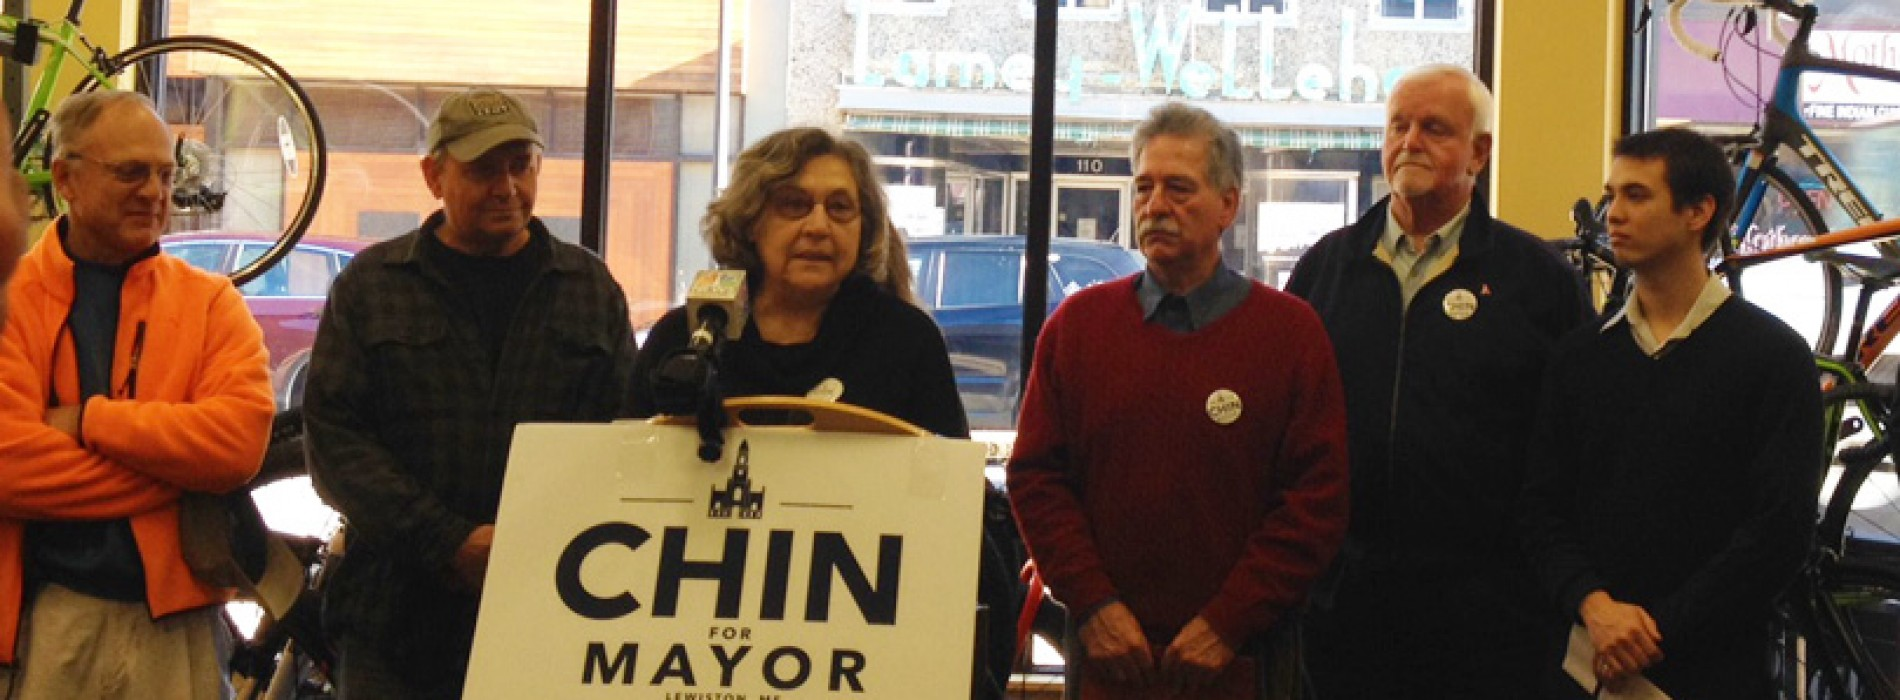 Majority of Lewiston City Council endorses Ben Chin for mayor